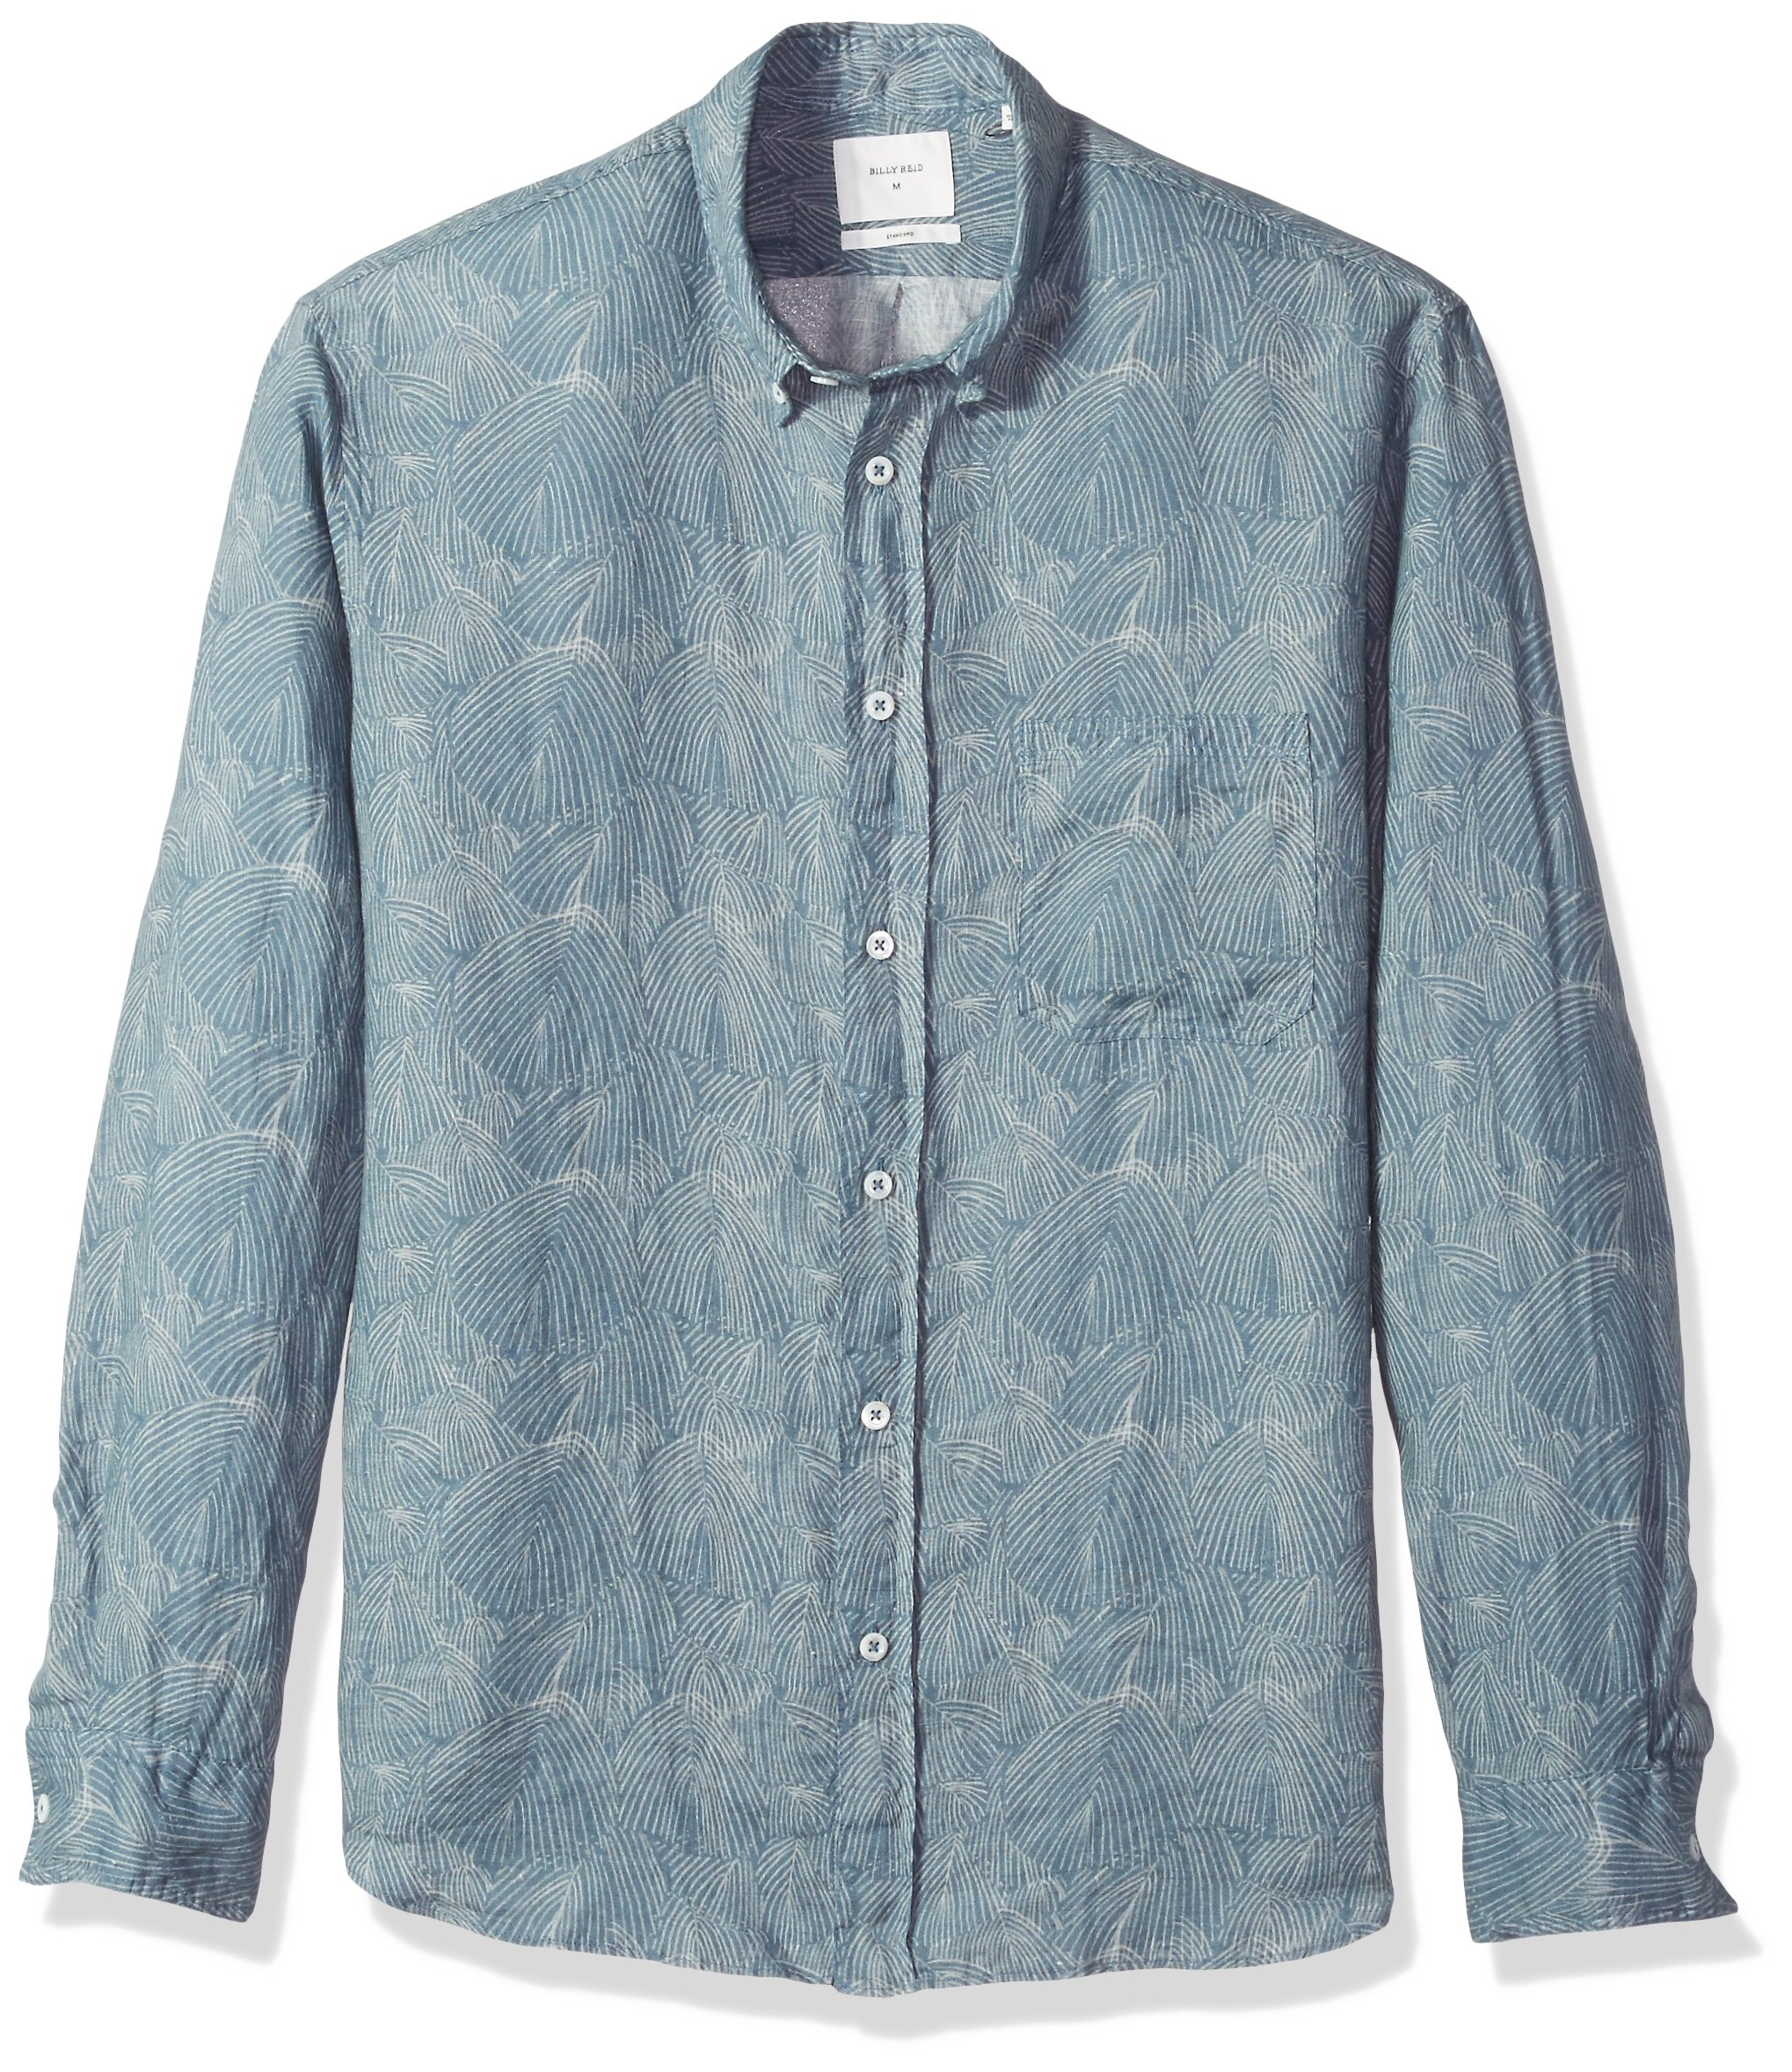 Billy Reid Men's Standard Fit Button Down Tuscumbia Shirt, Teal Willow M by Billy Reid (Image #1)